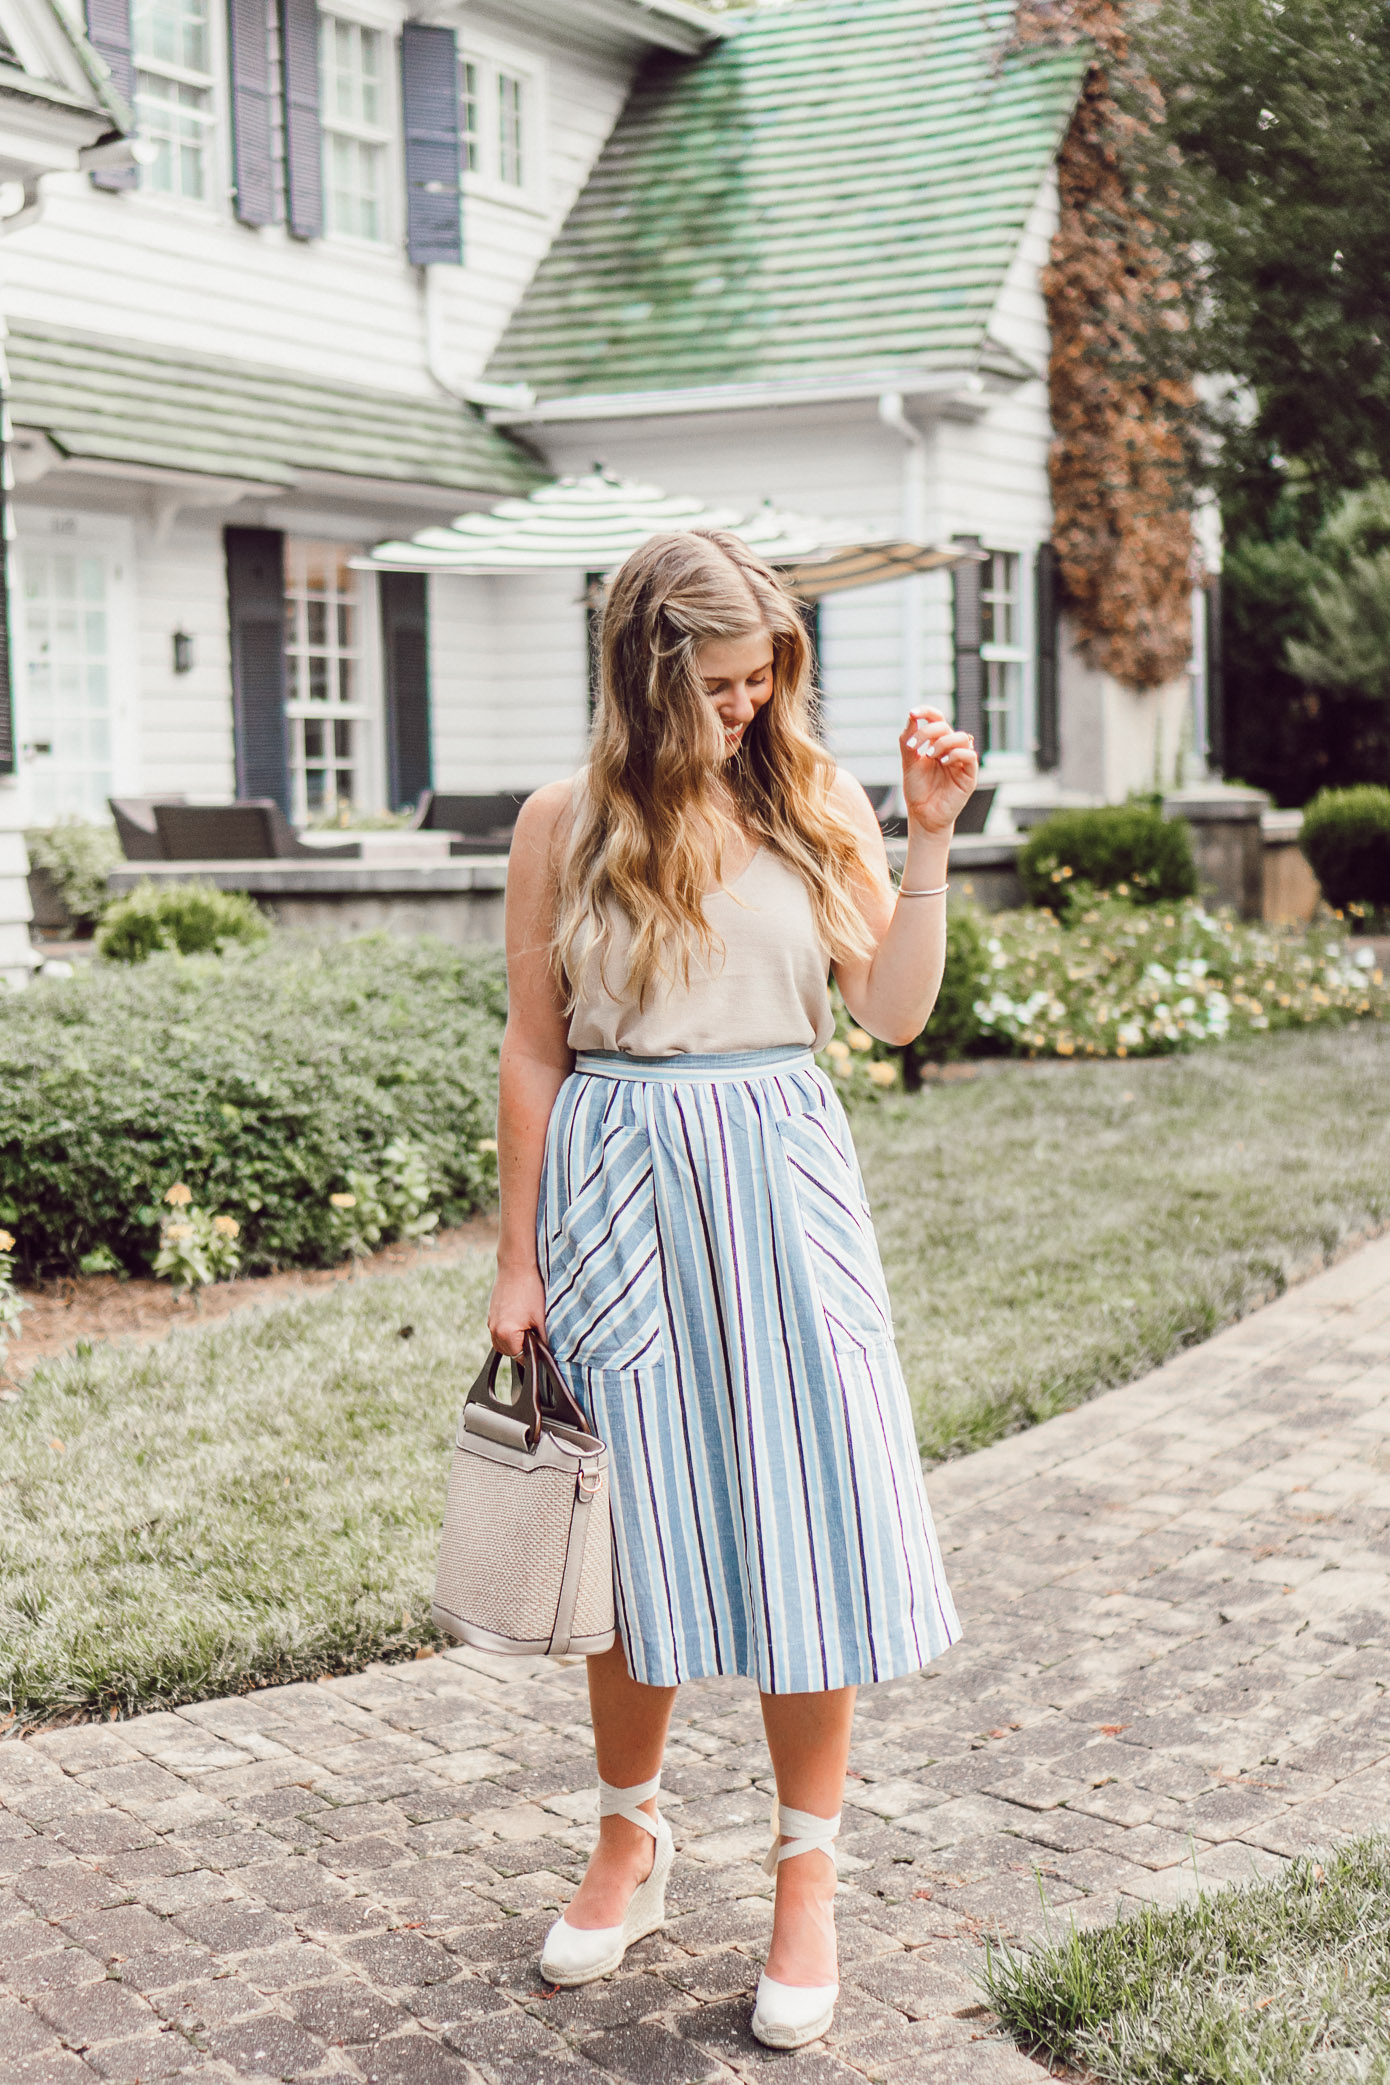 Blue and White Striped Midi Skirt | The Morehead Inn Charlotte NC Bed & Breakfast featured on Louella Reese Life & Style Blog